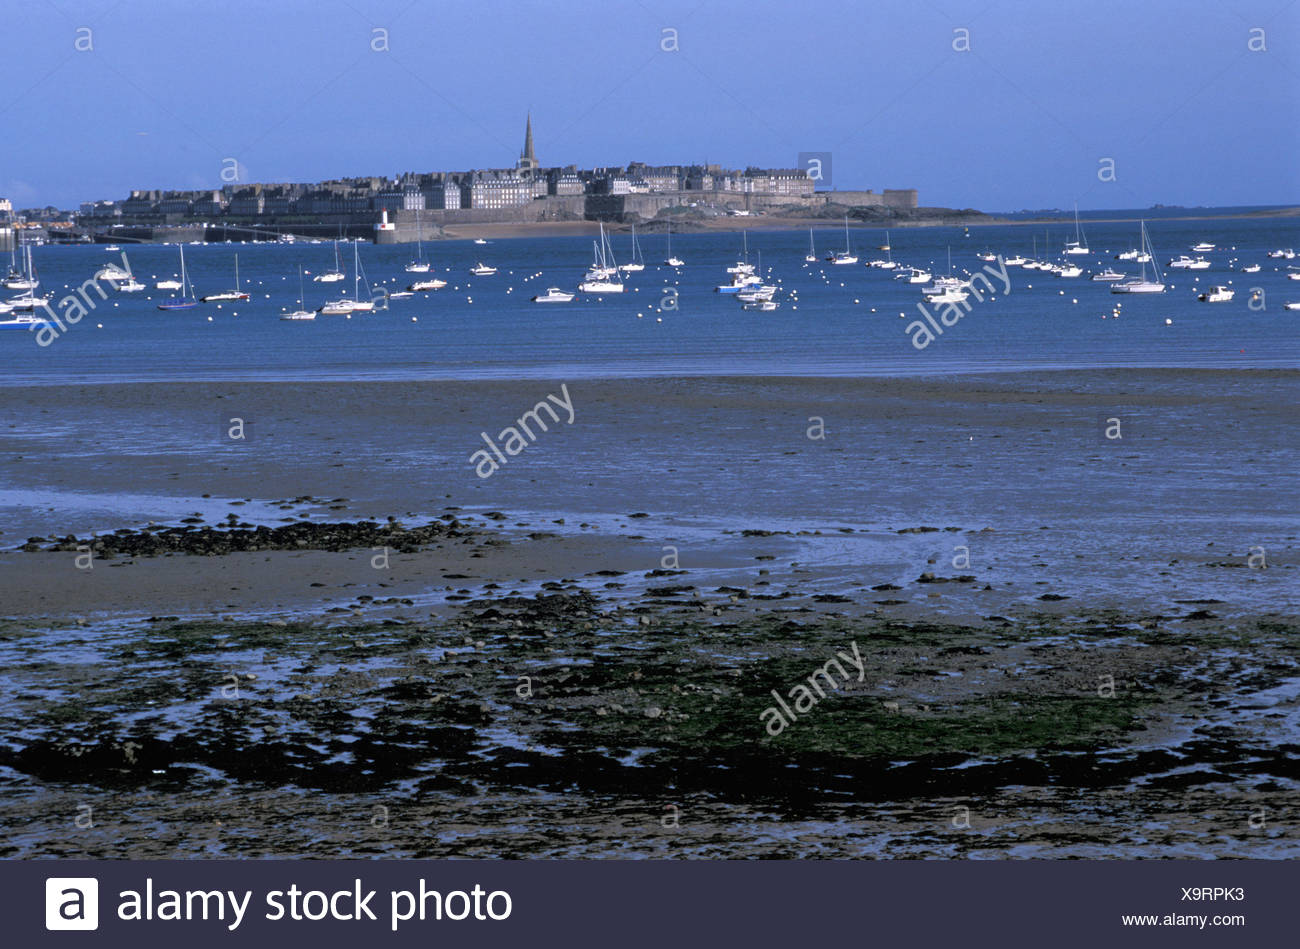 View, St. Malo, low tide, Brittany, Bretagne, France, Europe, boats - Stock Image